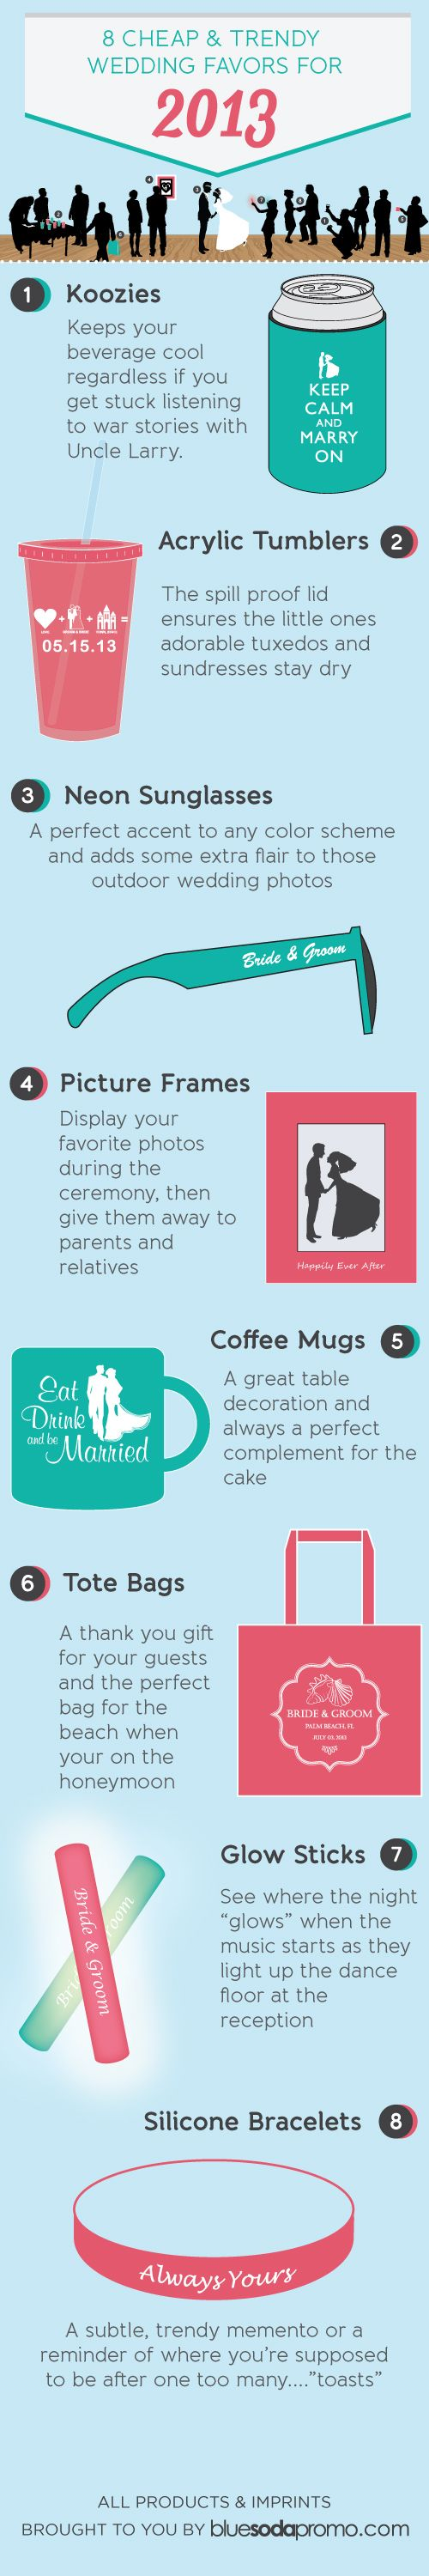 8 Cheap and Trendy Wedding Favors for 2013 / gifts for your guests / not necessary